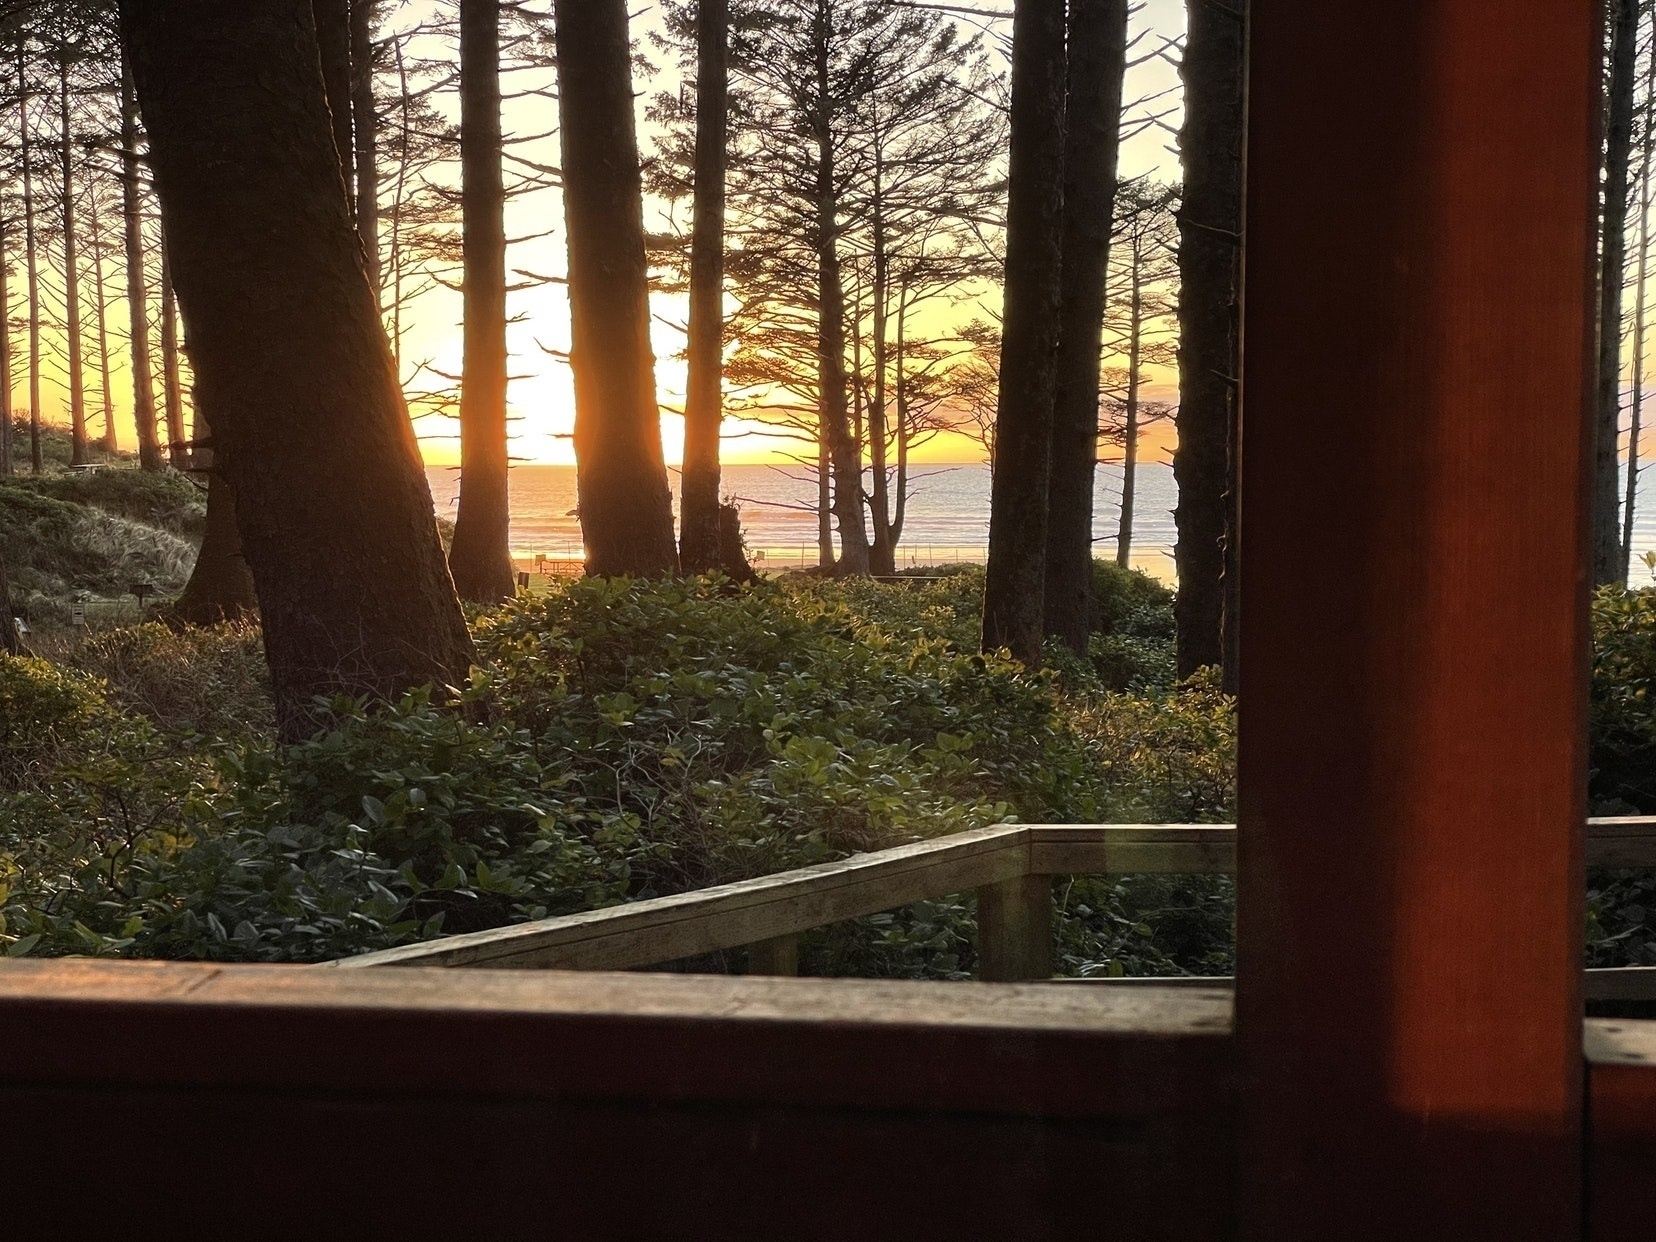 Sunset from the woods overlooking the Pacific Ocean.